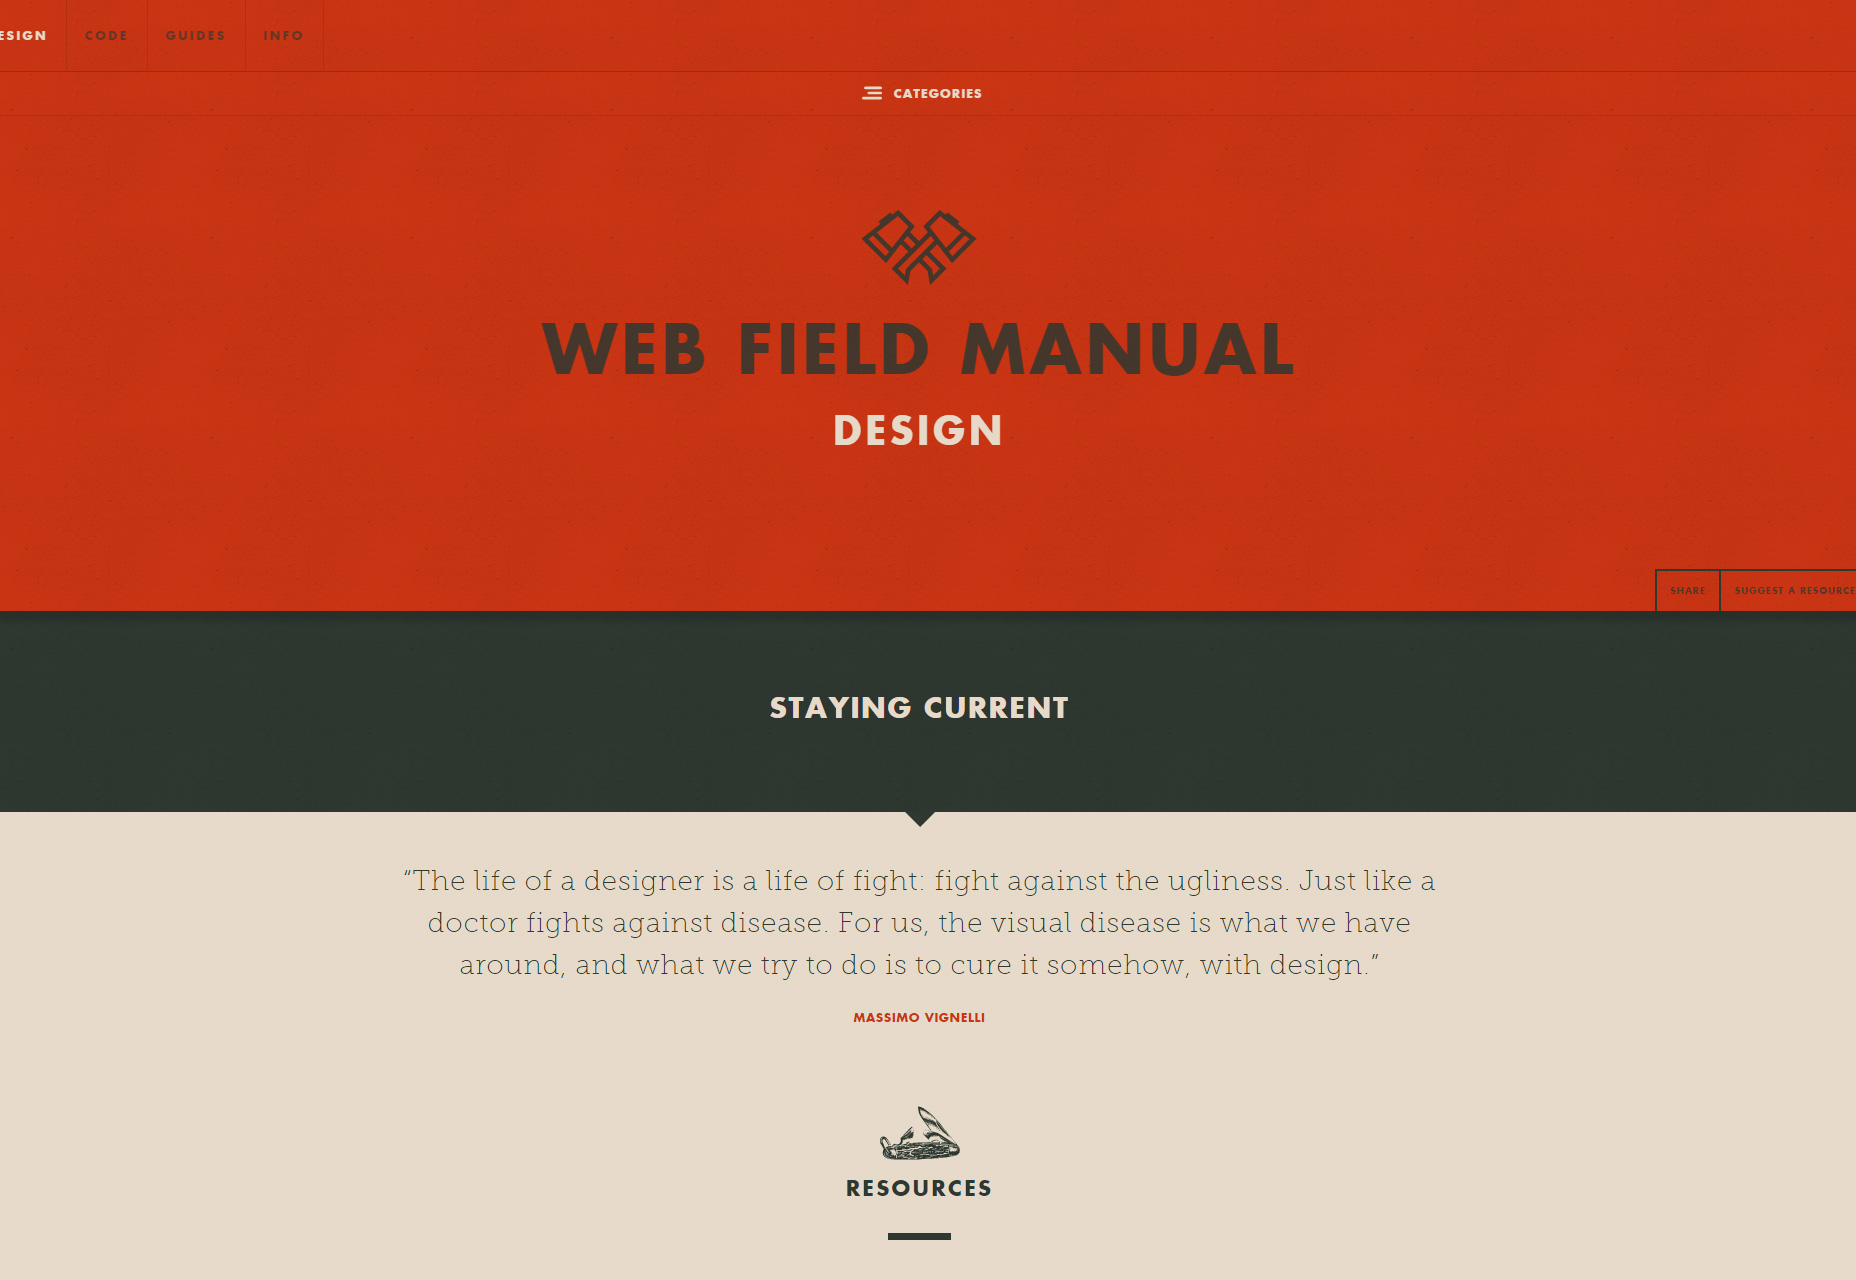 Web Field Manual: A Curated Documenting-focused UX Design Resources List